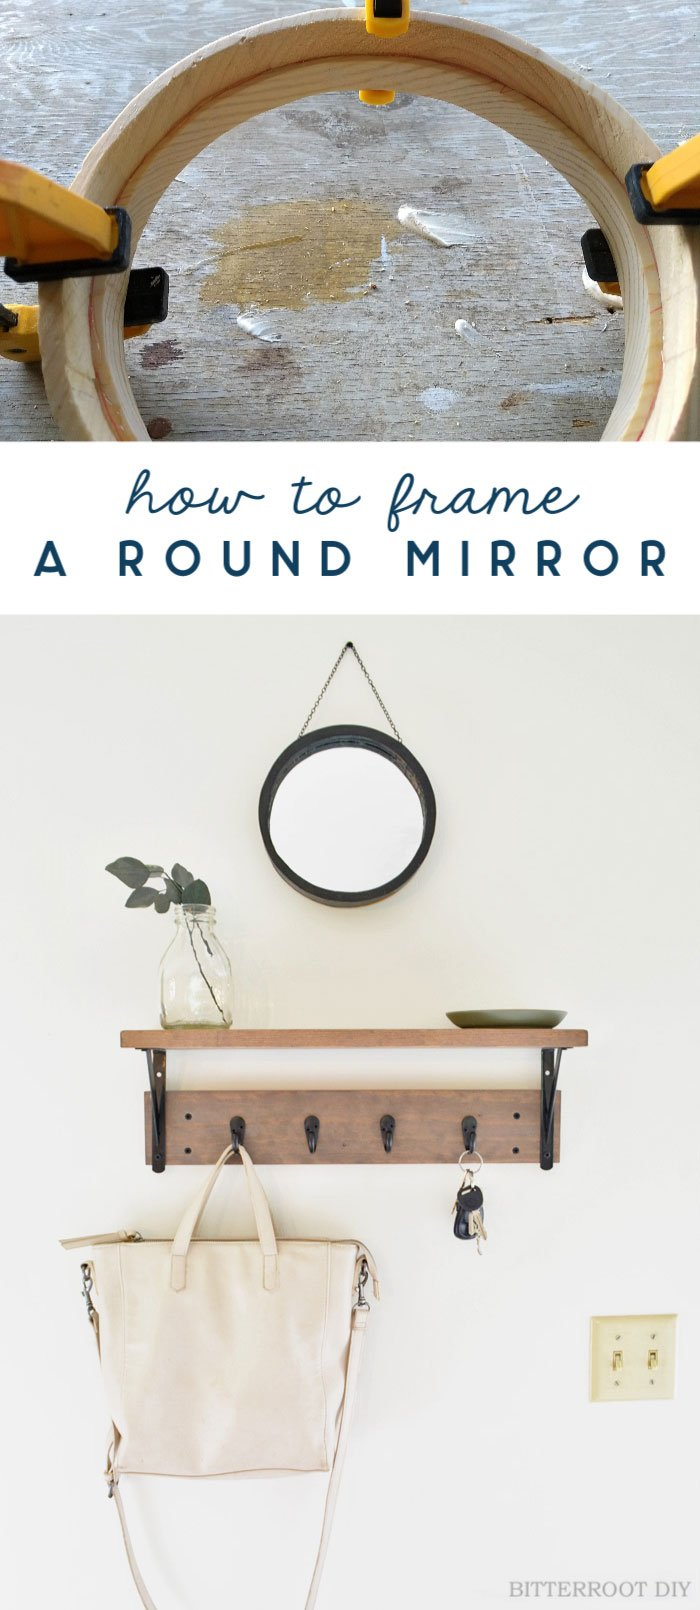 How to frame a mirror WITHOUT a router! Easy tutorial with just a few tools - must try! #roundmirror #howto #decorating #woodworking #scrapwood #beginnerwoodworking #jigsaw #frameamirror